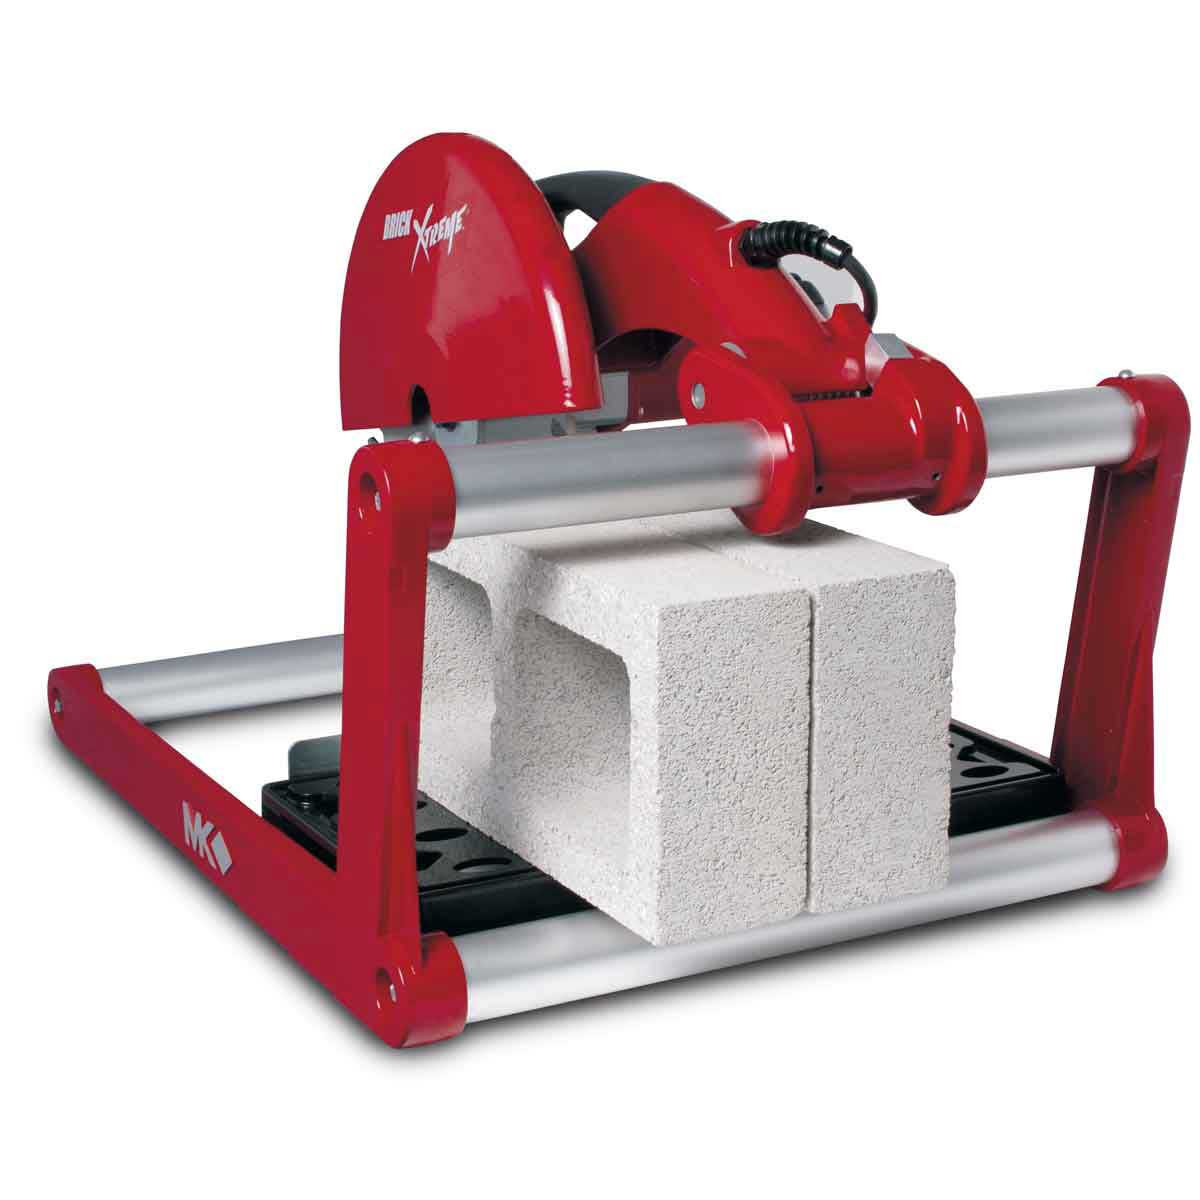 mk-bx-3 14in masonry saw open back cut up to 16in